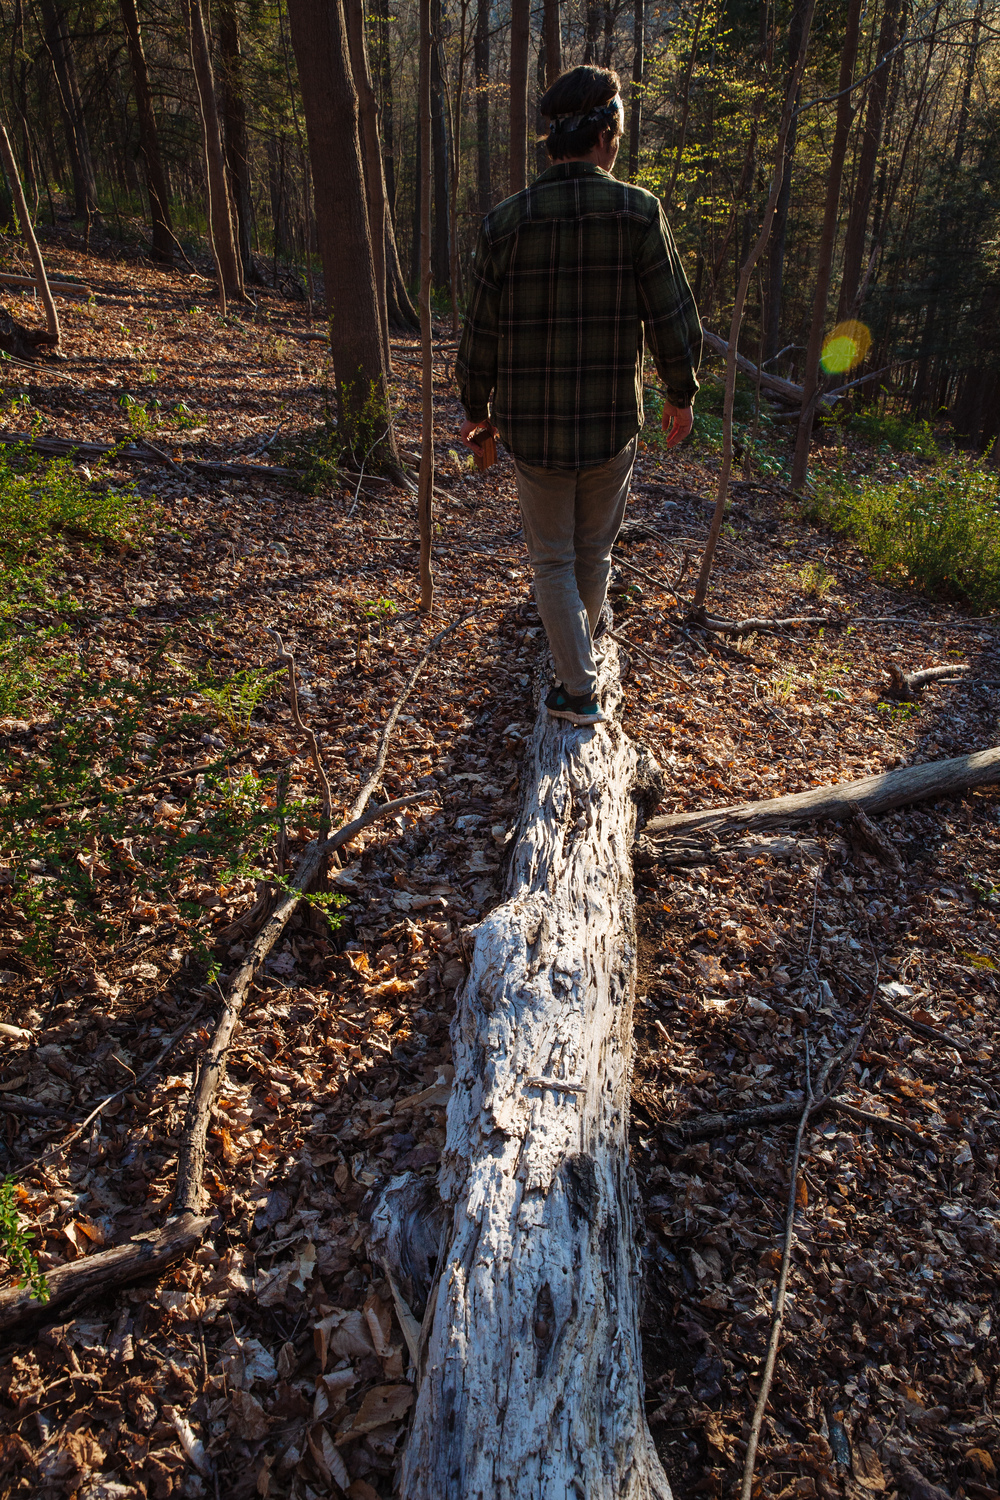 A hike along tree trunks through the Delaware Water Gap forest in New Jersey.